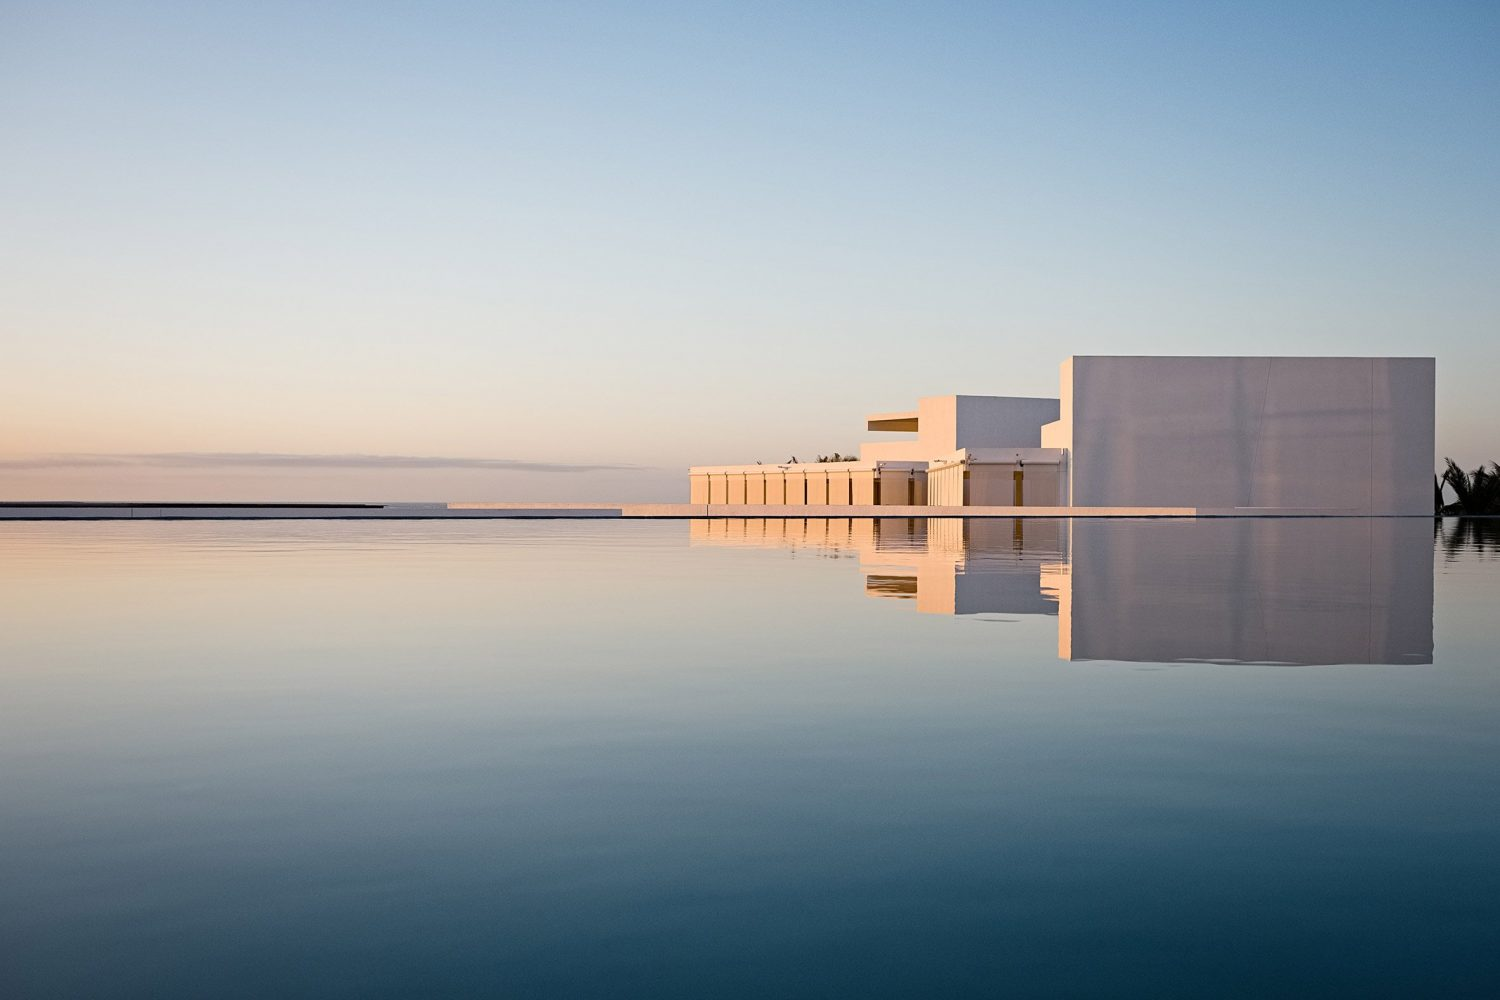 Hotel Mar Adentro by Taller Aragonés Surrounded by Expansive Pools hotel mar adentro Hotel Mar Adentro by Taller Aragonés Surrounded by Expansive Pools Hotel Mar Adentro by Taller Aragon  s Surrounded by Expansive Pools 11